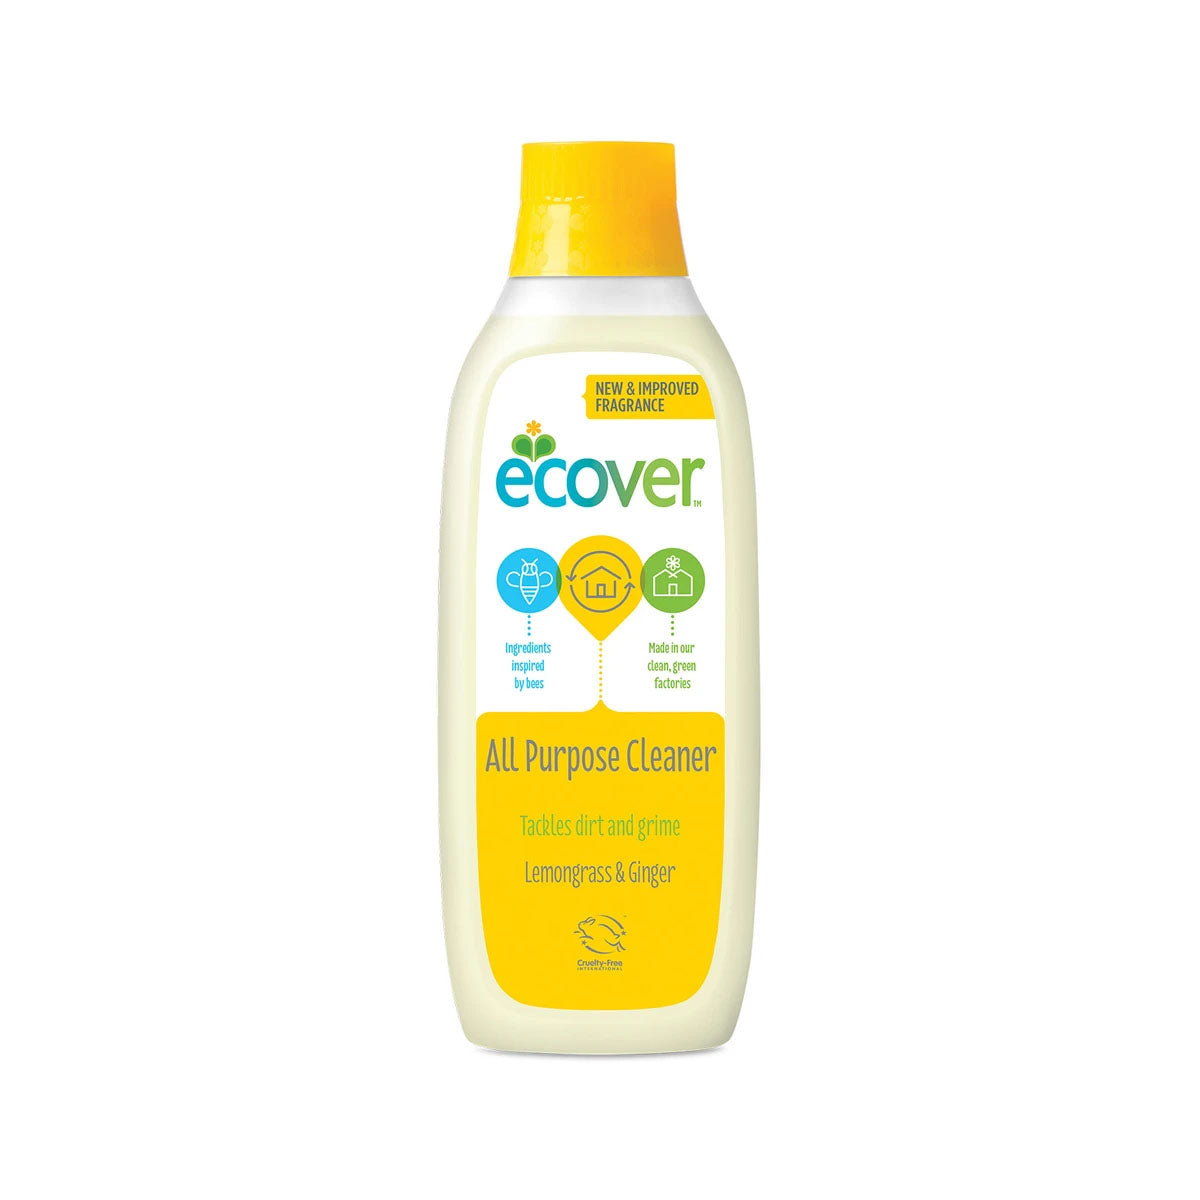 Ecover All Purpose Cleaner - Lemongrass & Ginger (1L)